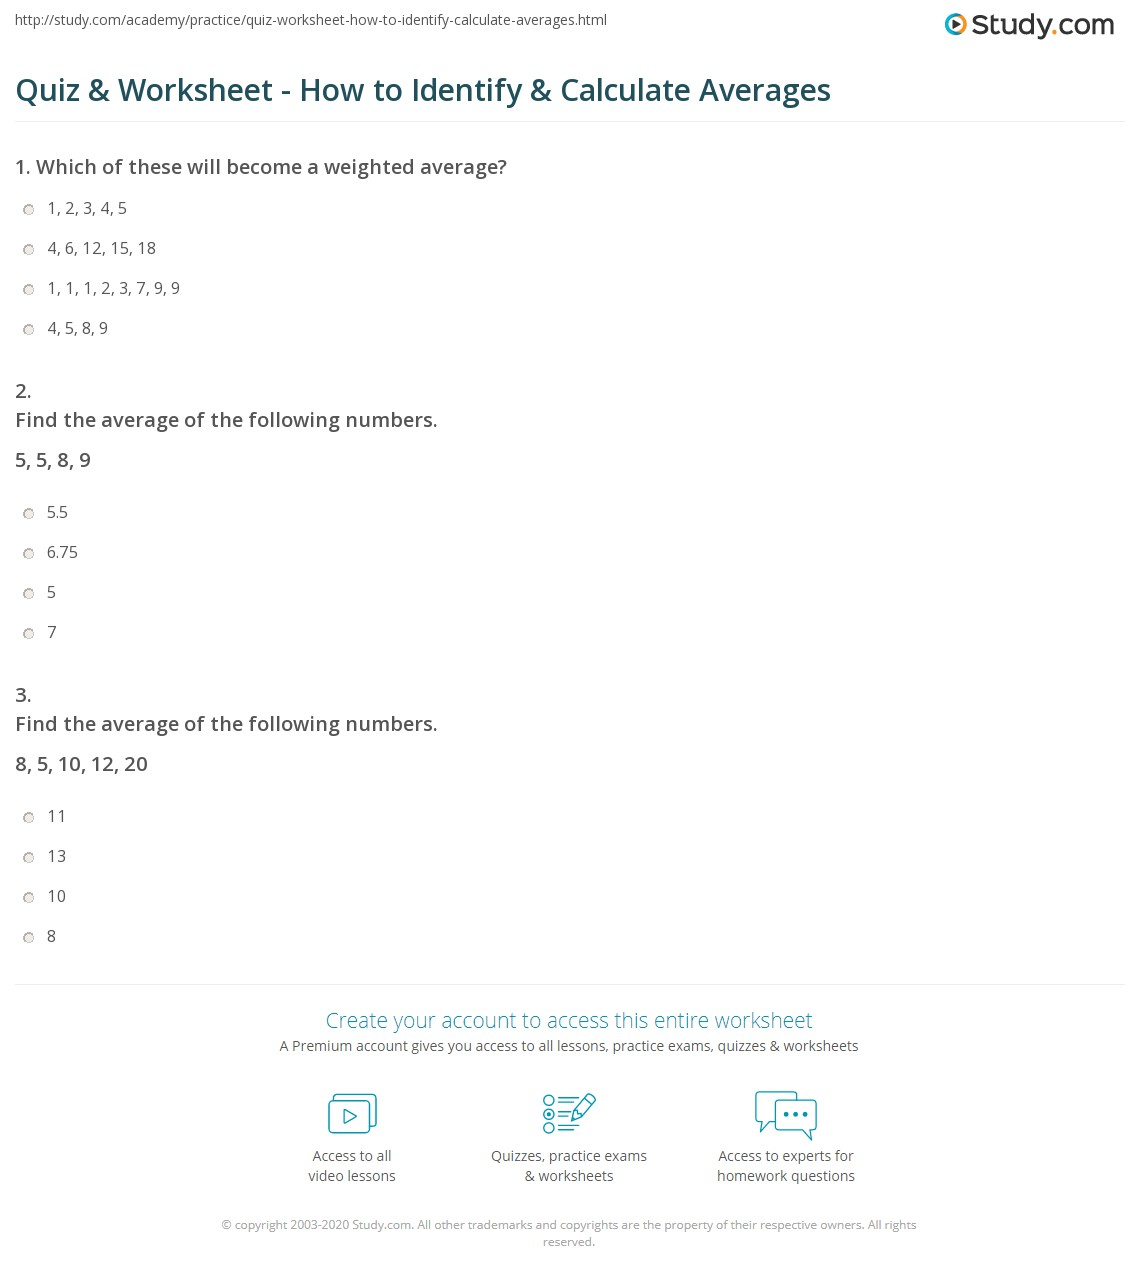 Quiz & Worksheet - How to Identify & Calculate Averages | Study.com